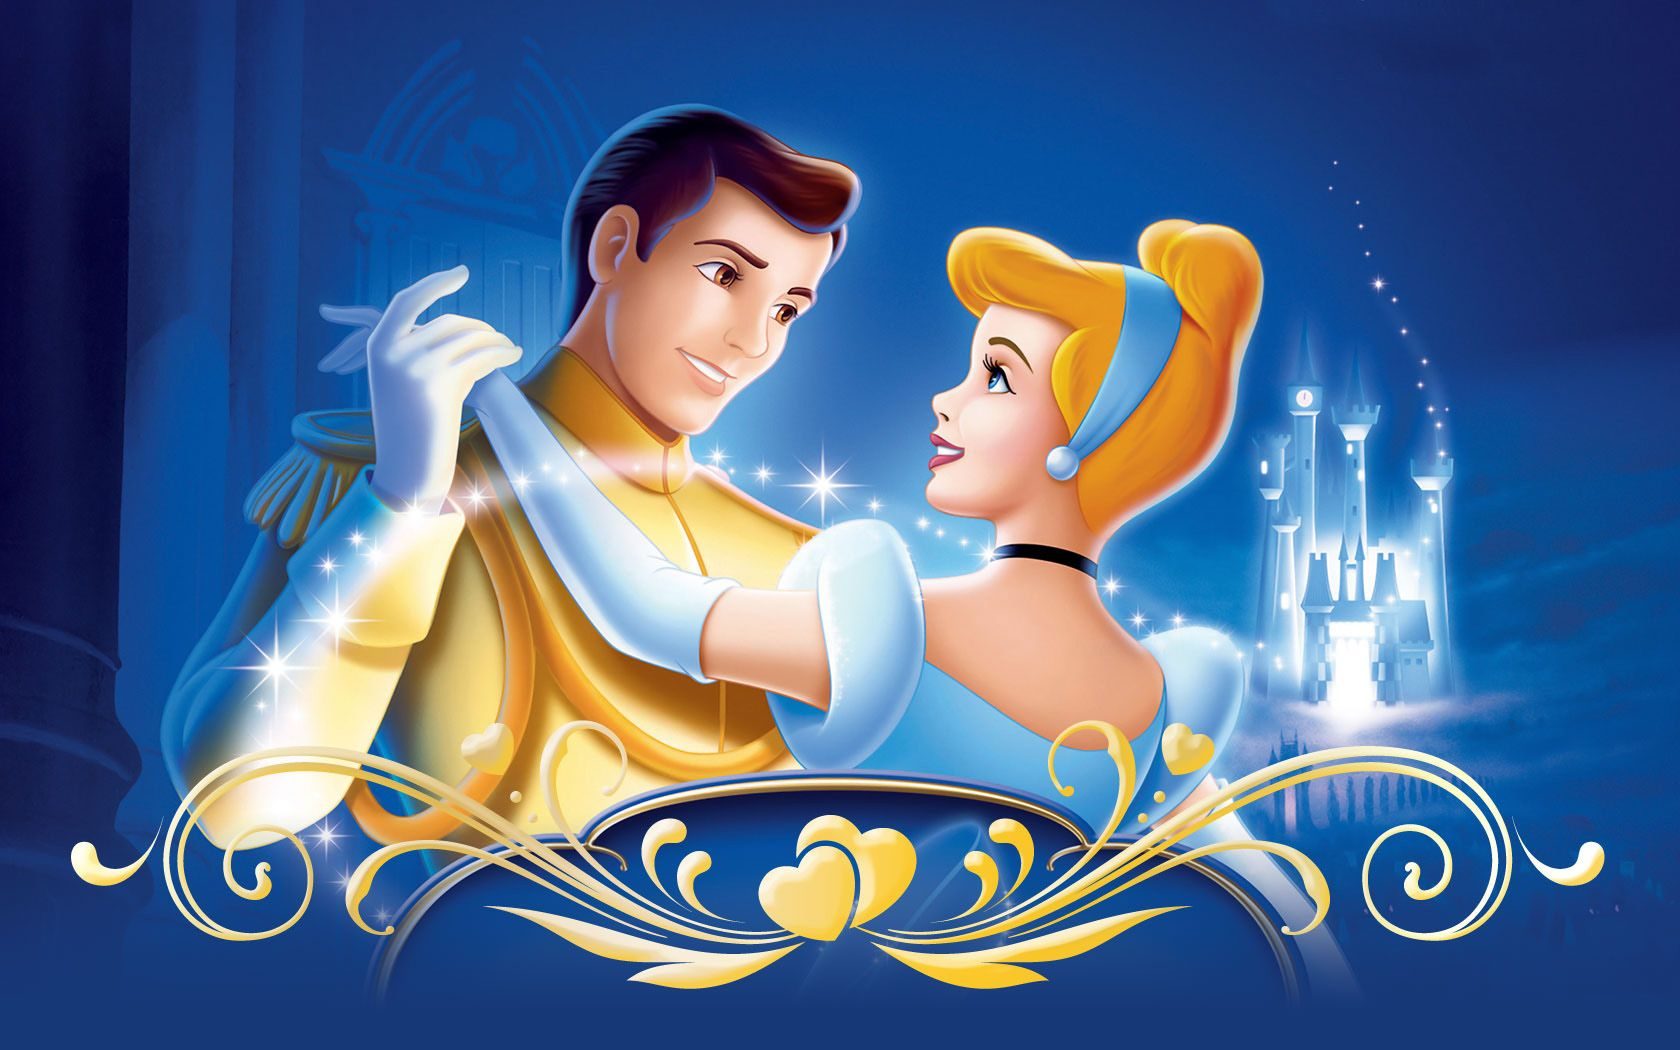 Desktop Prince Charming Hd With Cartoon Image Download Full concernant Cendrillon 3 Disney